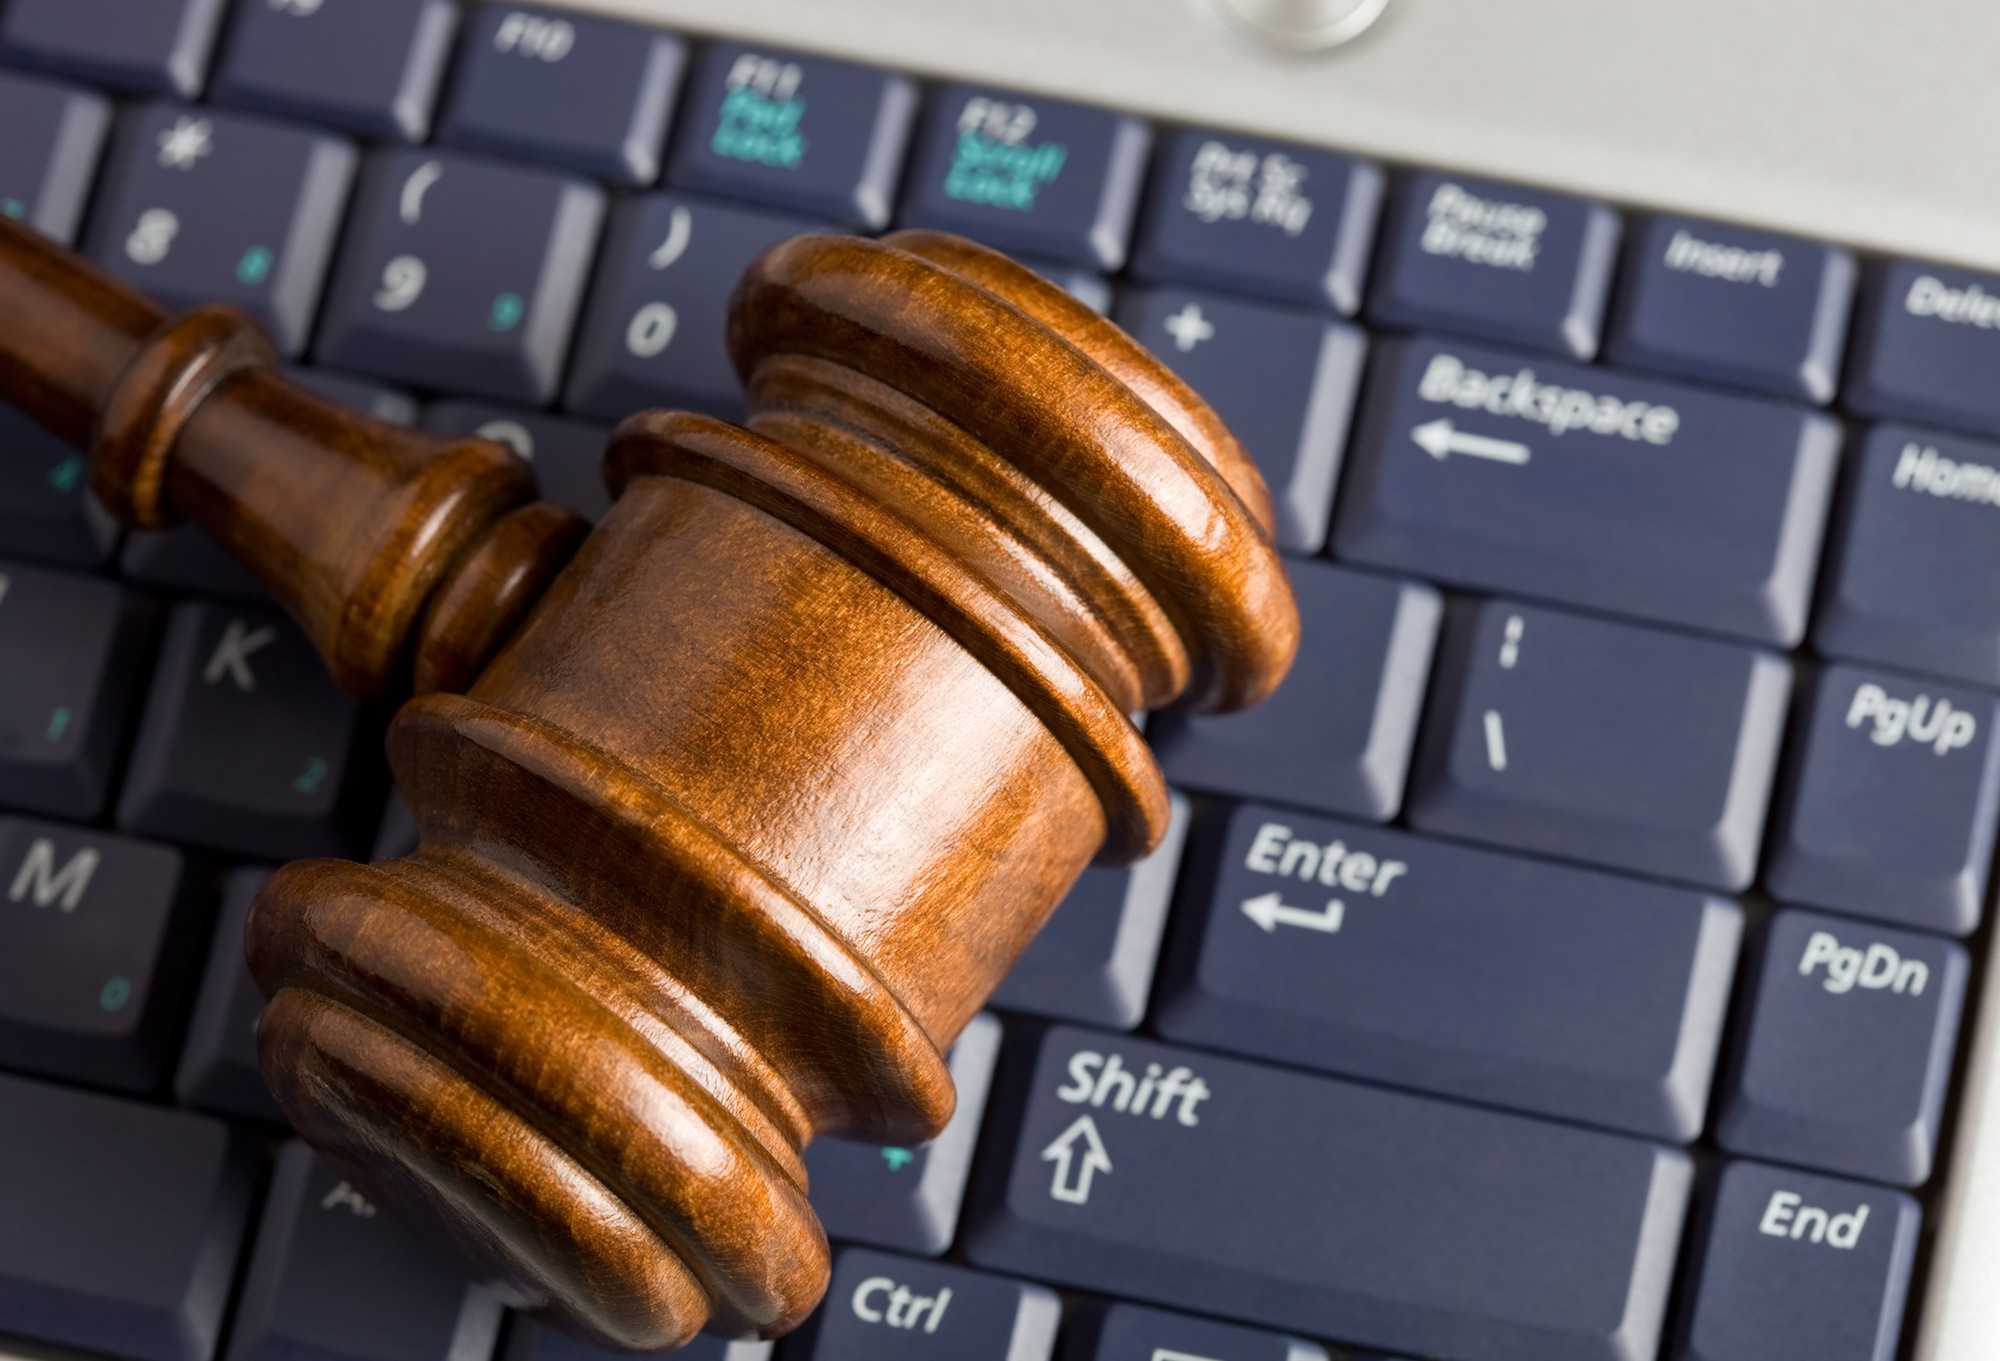 Online Auction Concept with Gavel on Laptop